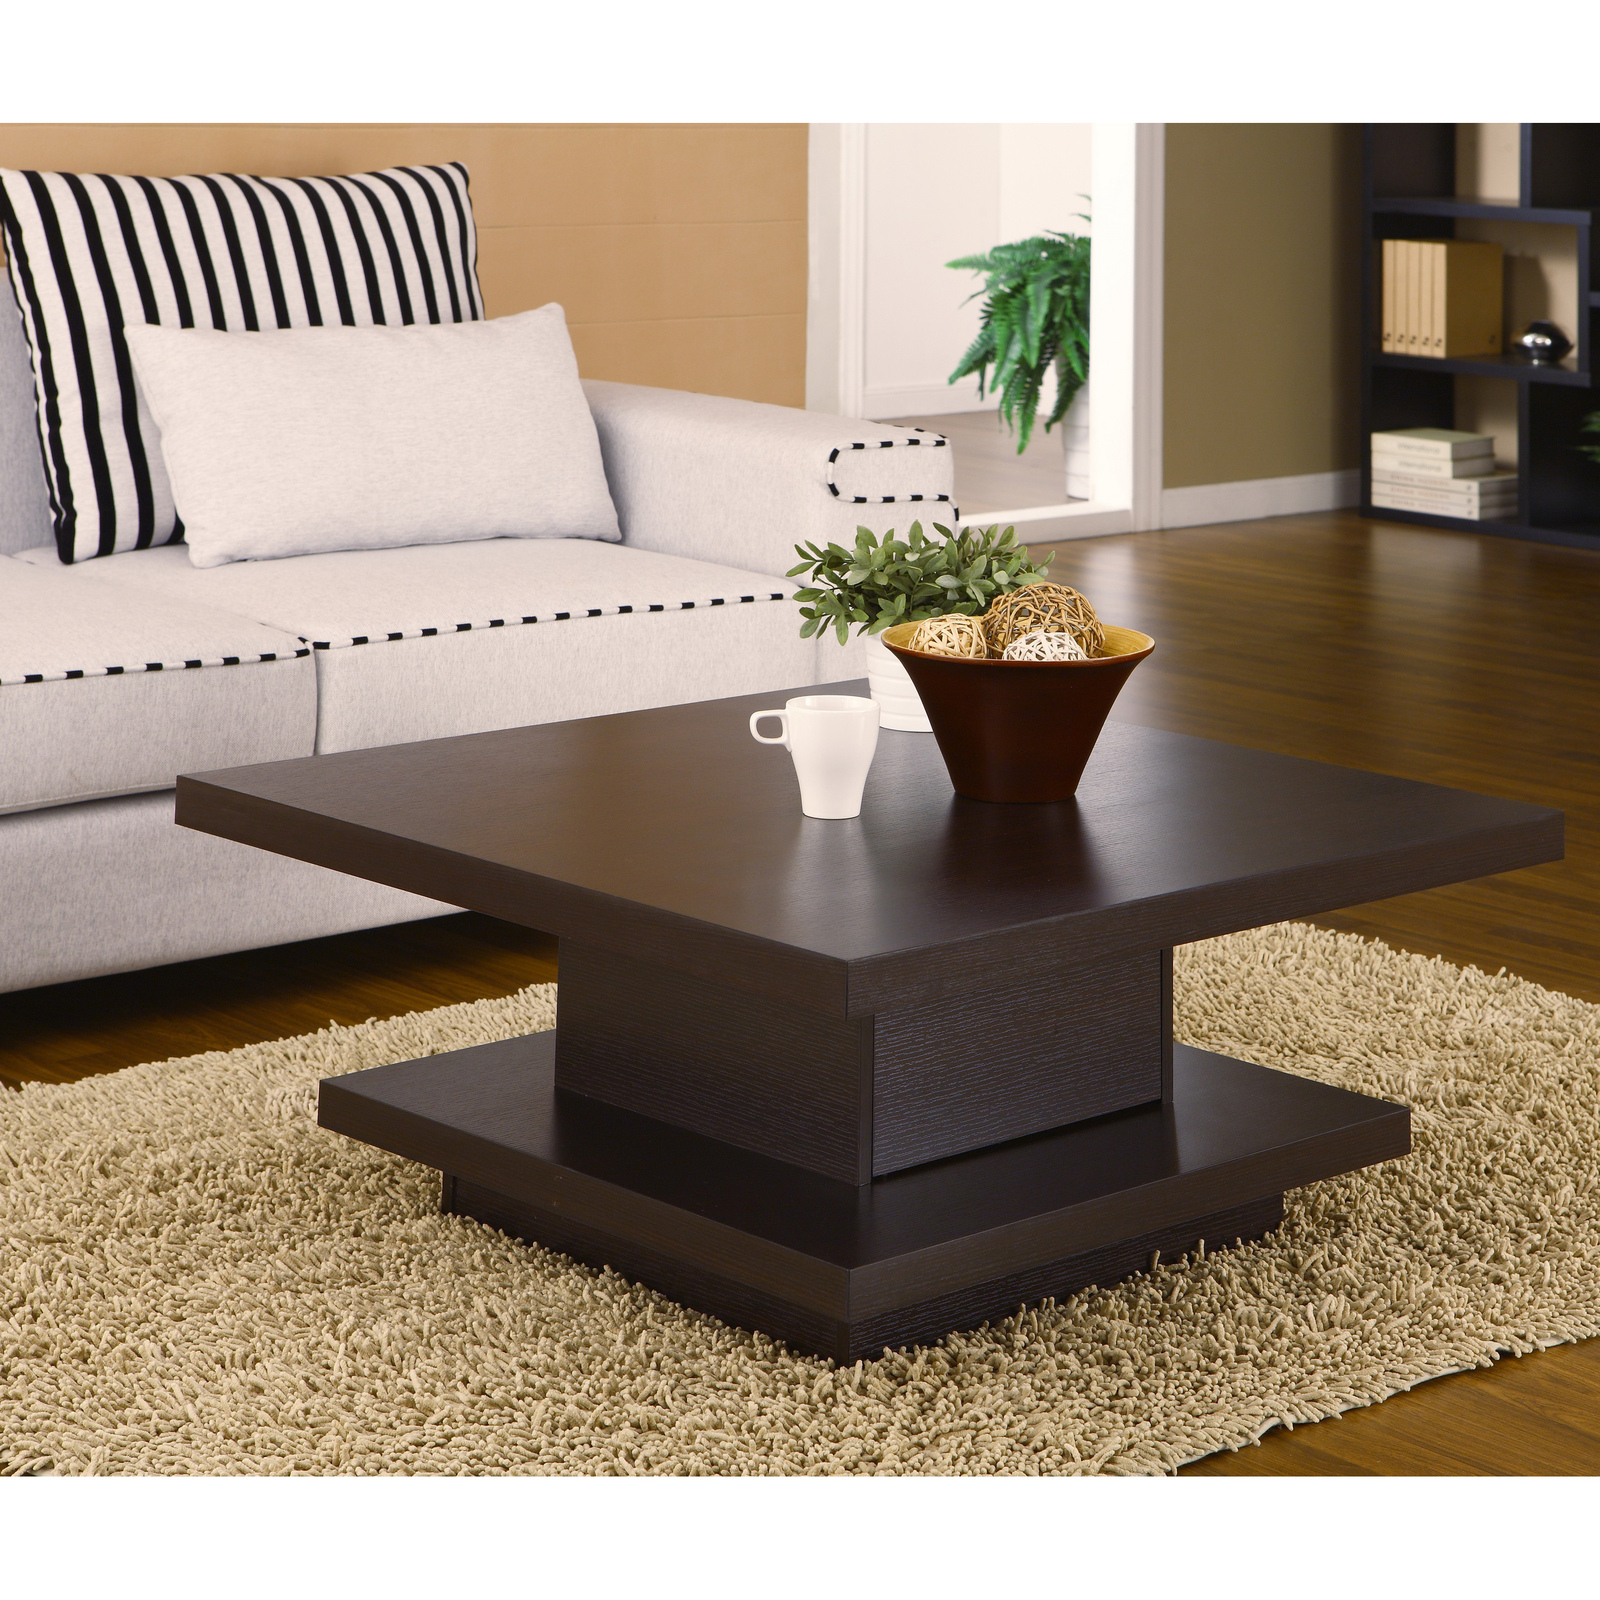 Modern Wood Coffee Table: Contemporary Modern Wood Coffee Tables Unique Square Style